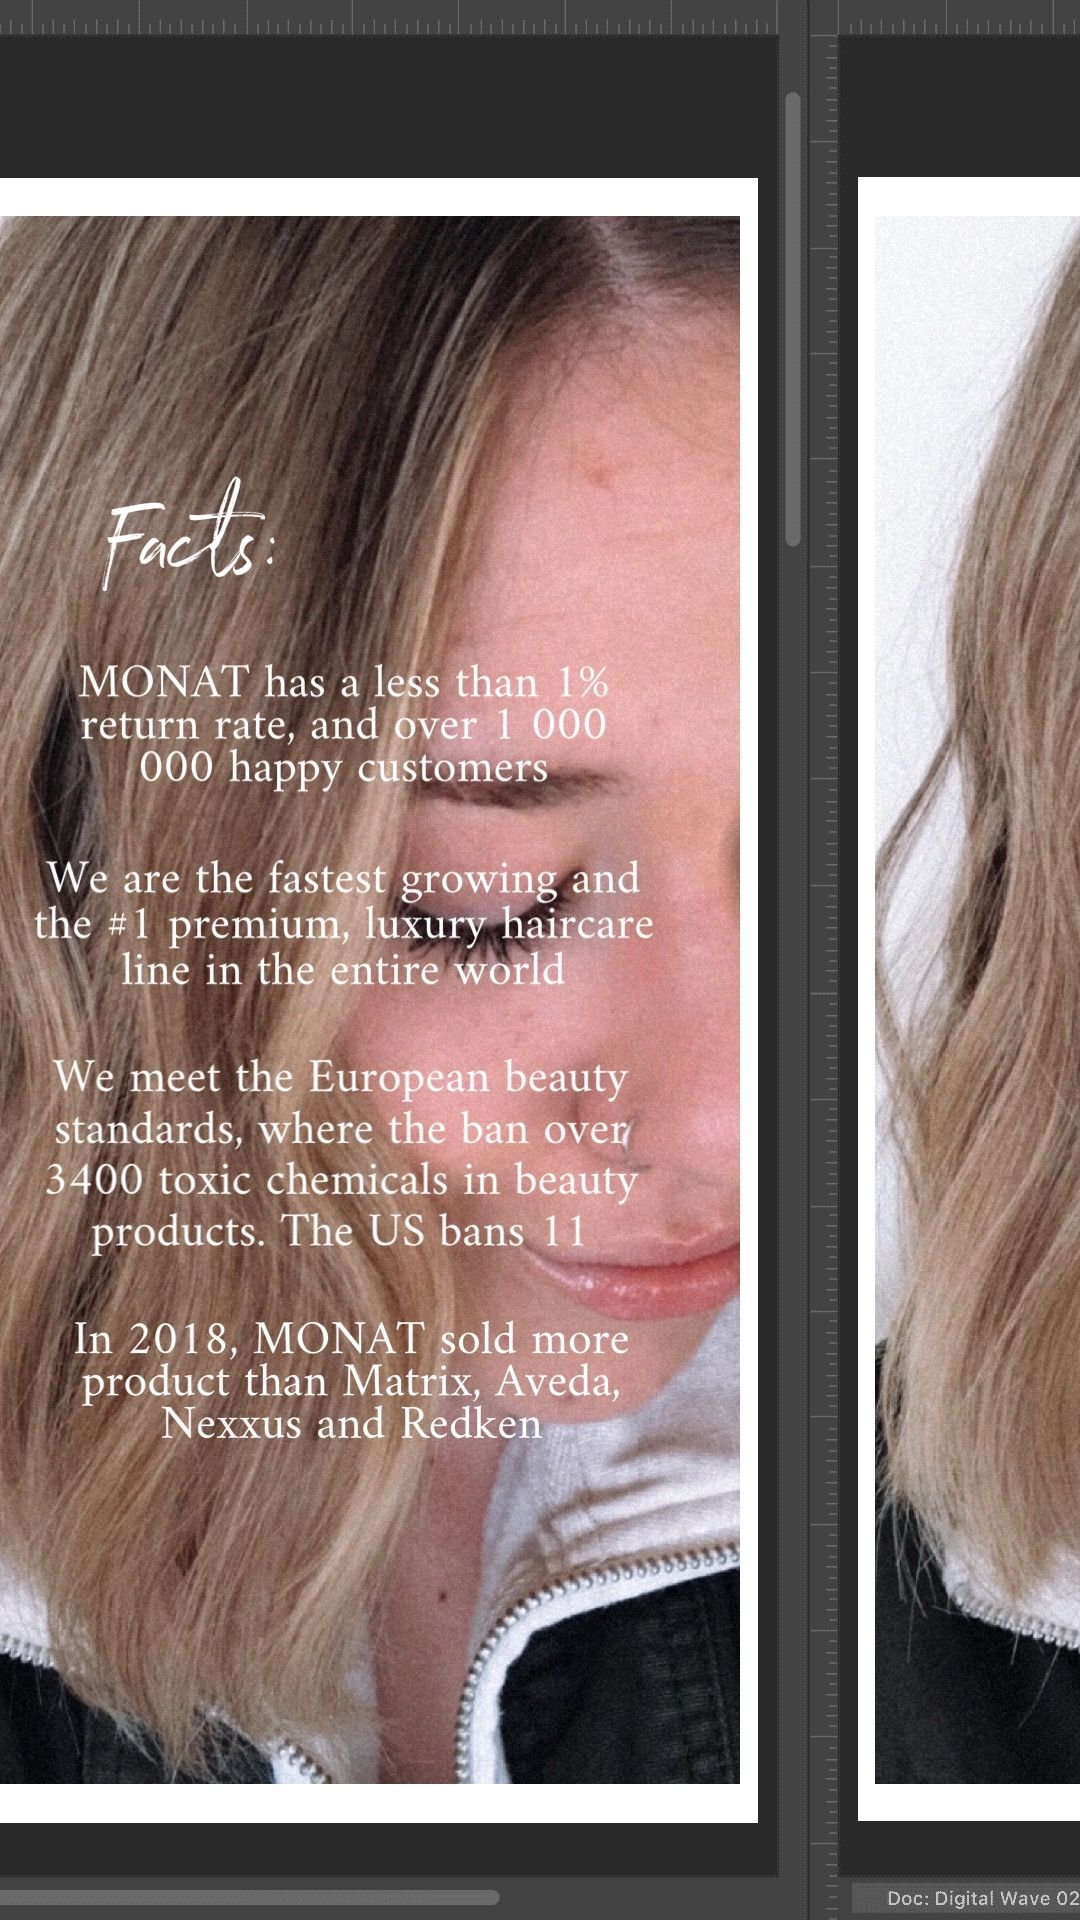 The Worlds 1 Growing Haircare Product Line In 2020 Hair Care Love Your Hair Beauty Standards